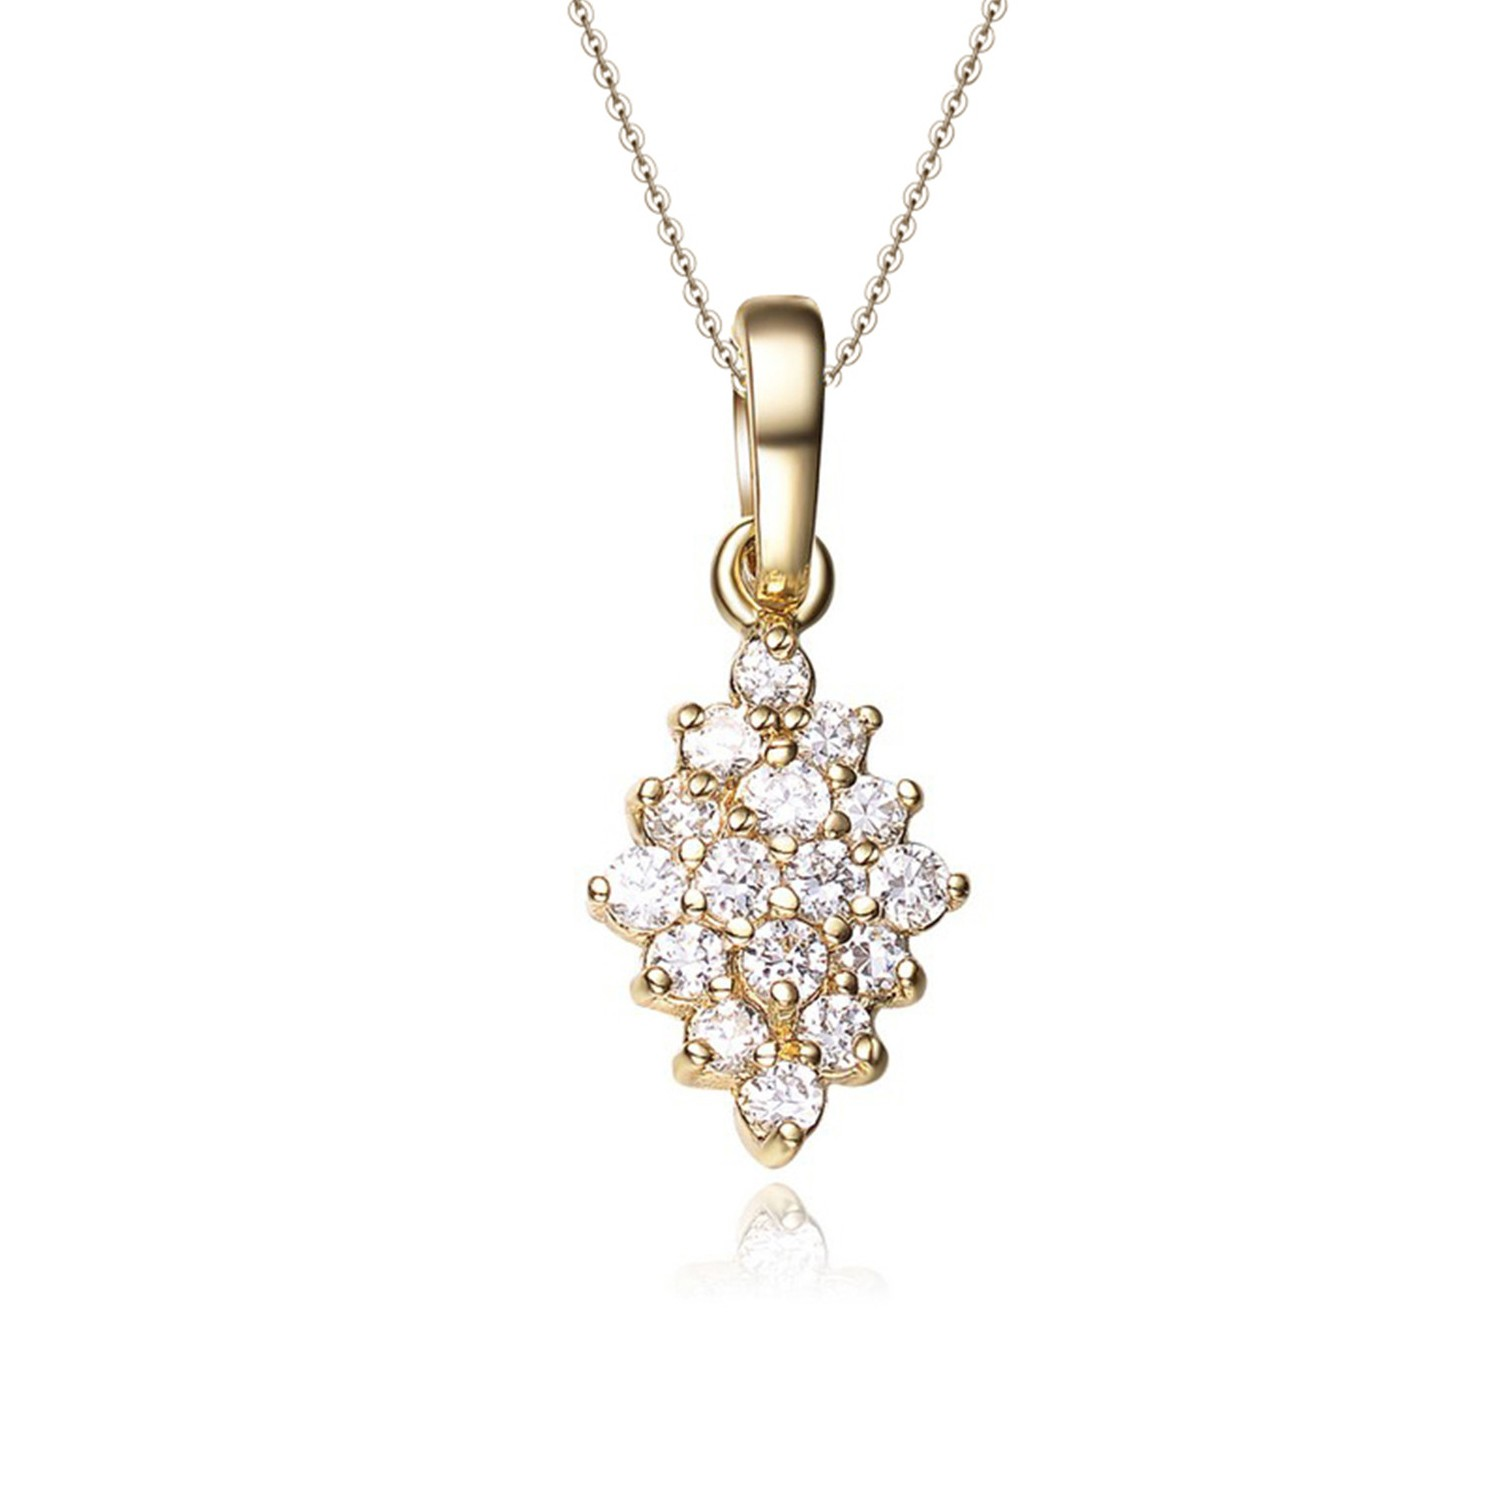 Dainty 925 silver gold plated pendant necklace women jewelry elegant necklace with cubic zirconia